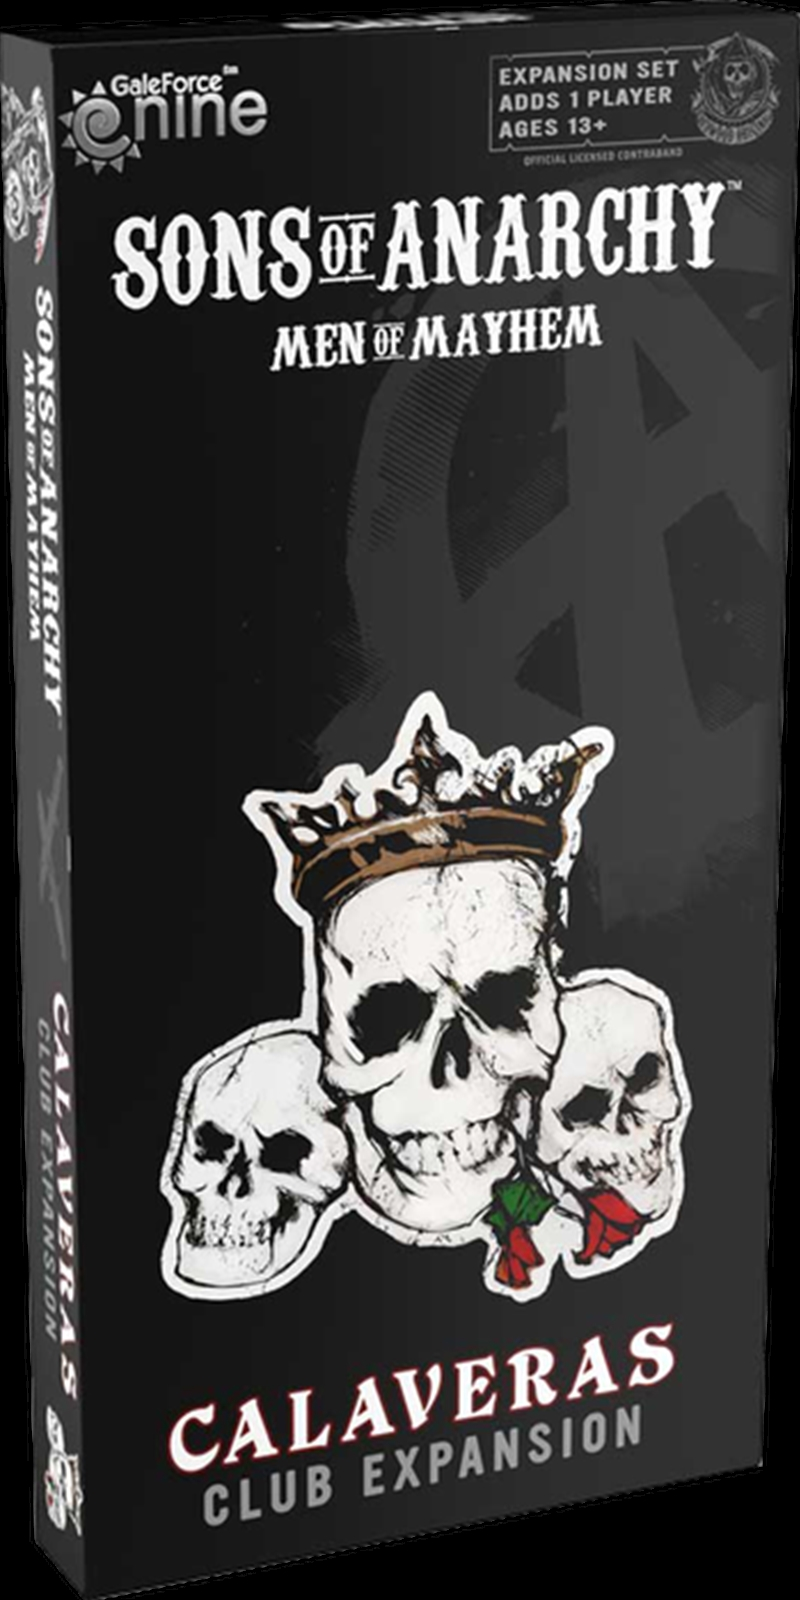 Sons of Anarchy - Calaveras Club Expansion | Merchandise